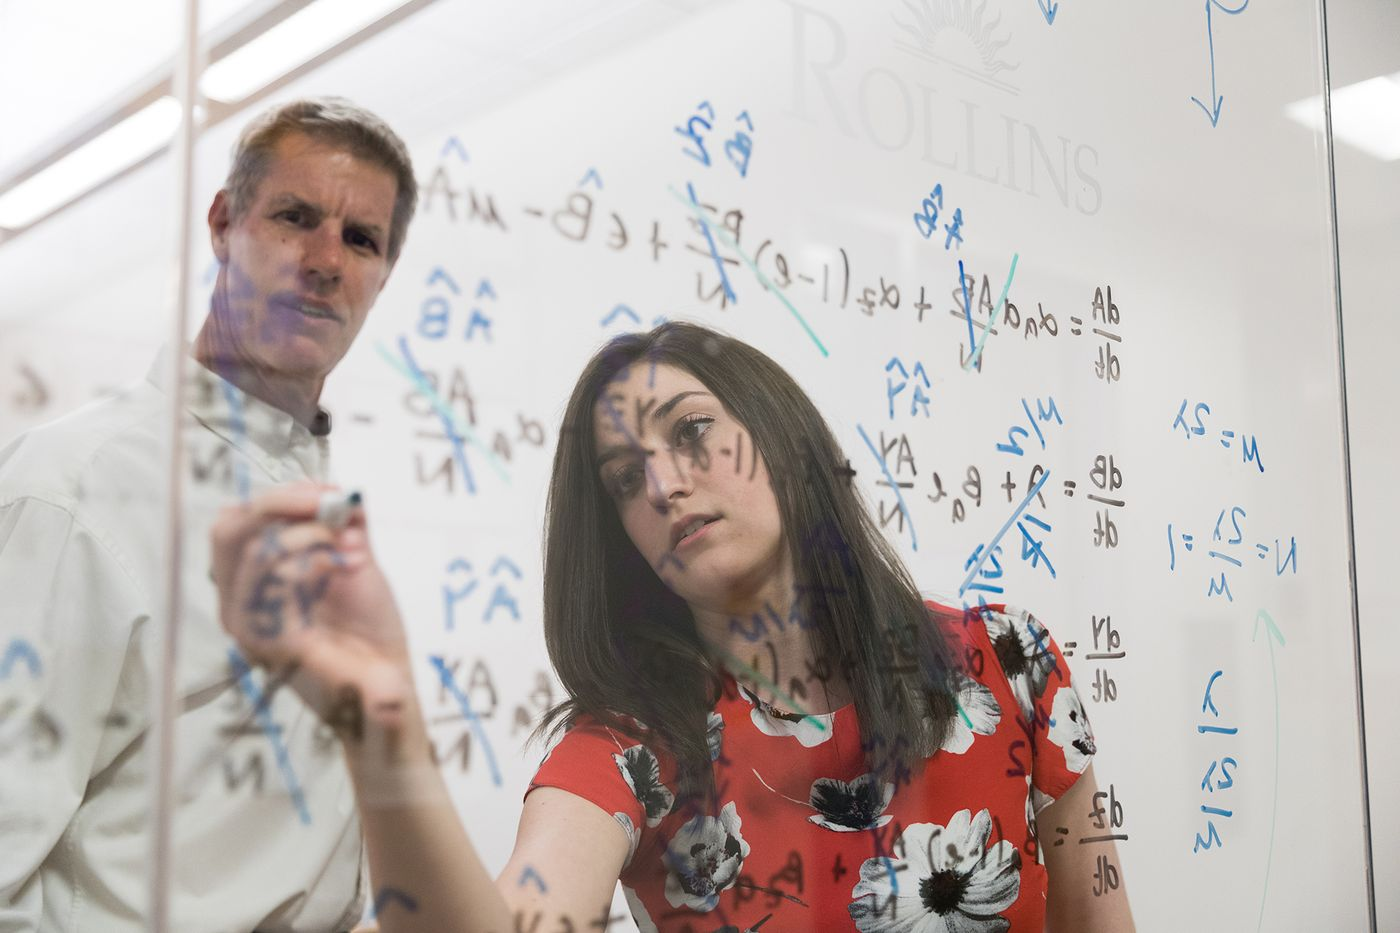 Arden Baxter and Professor Mark Anderson work on a whiteboard together.